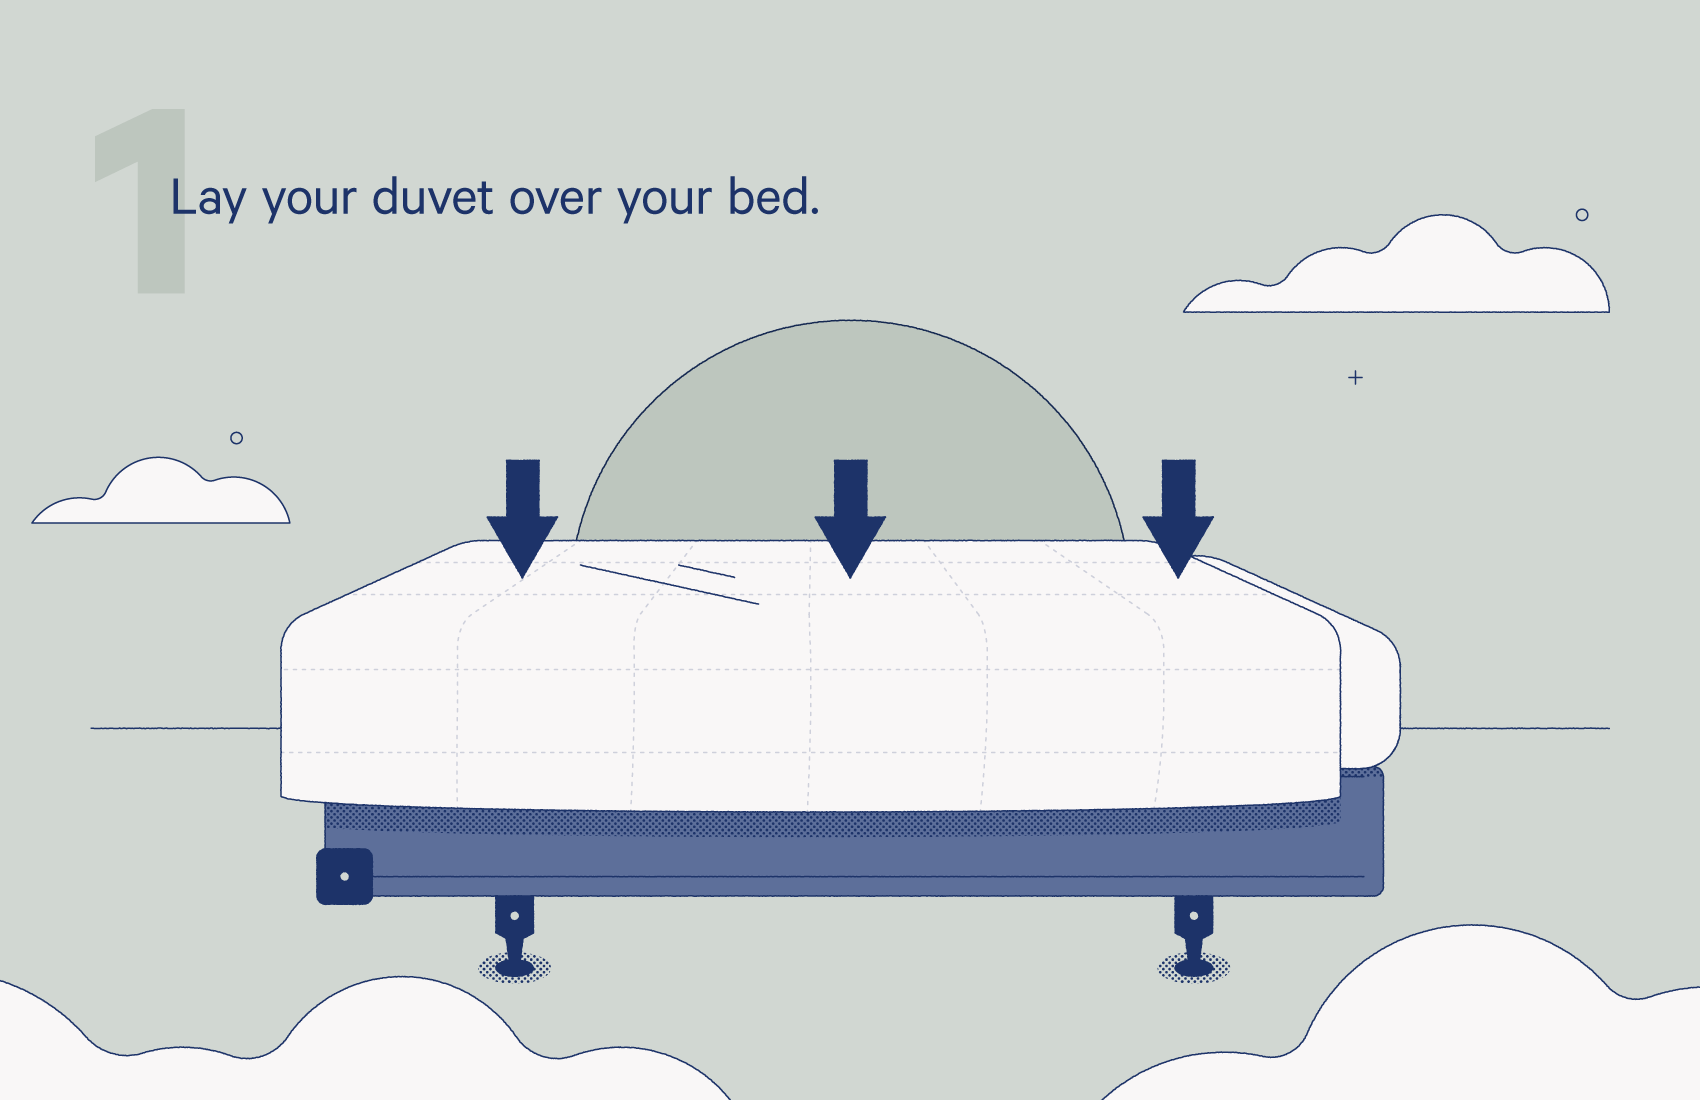 lay your duvet over your bed.